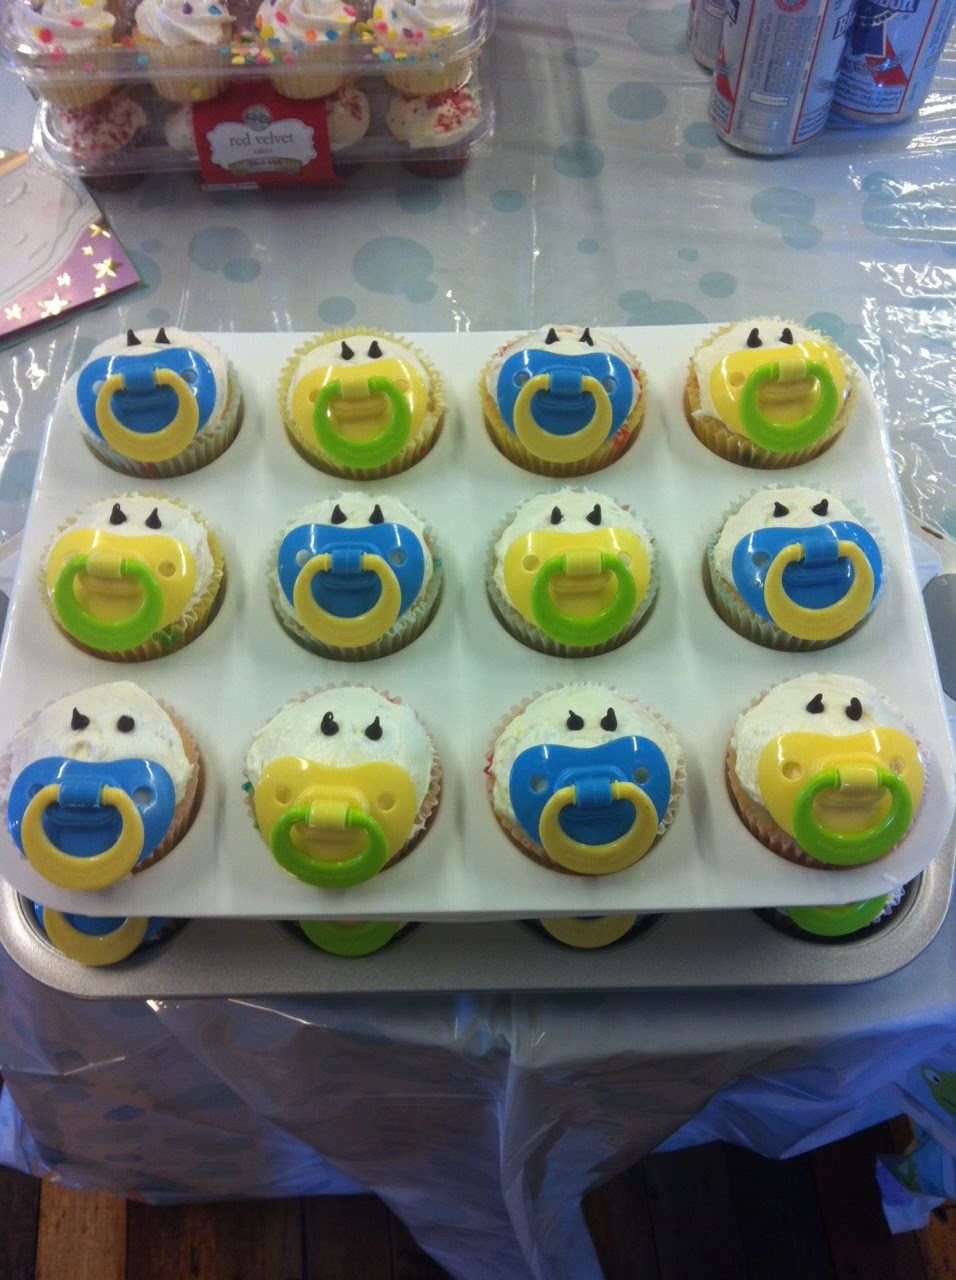 Cool Baby Shower Cakes: Baby Shower Boy Cupcakes Recipes for Baby Shower Food Ideas For Boy